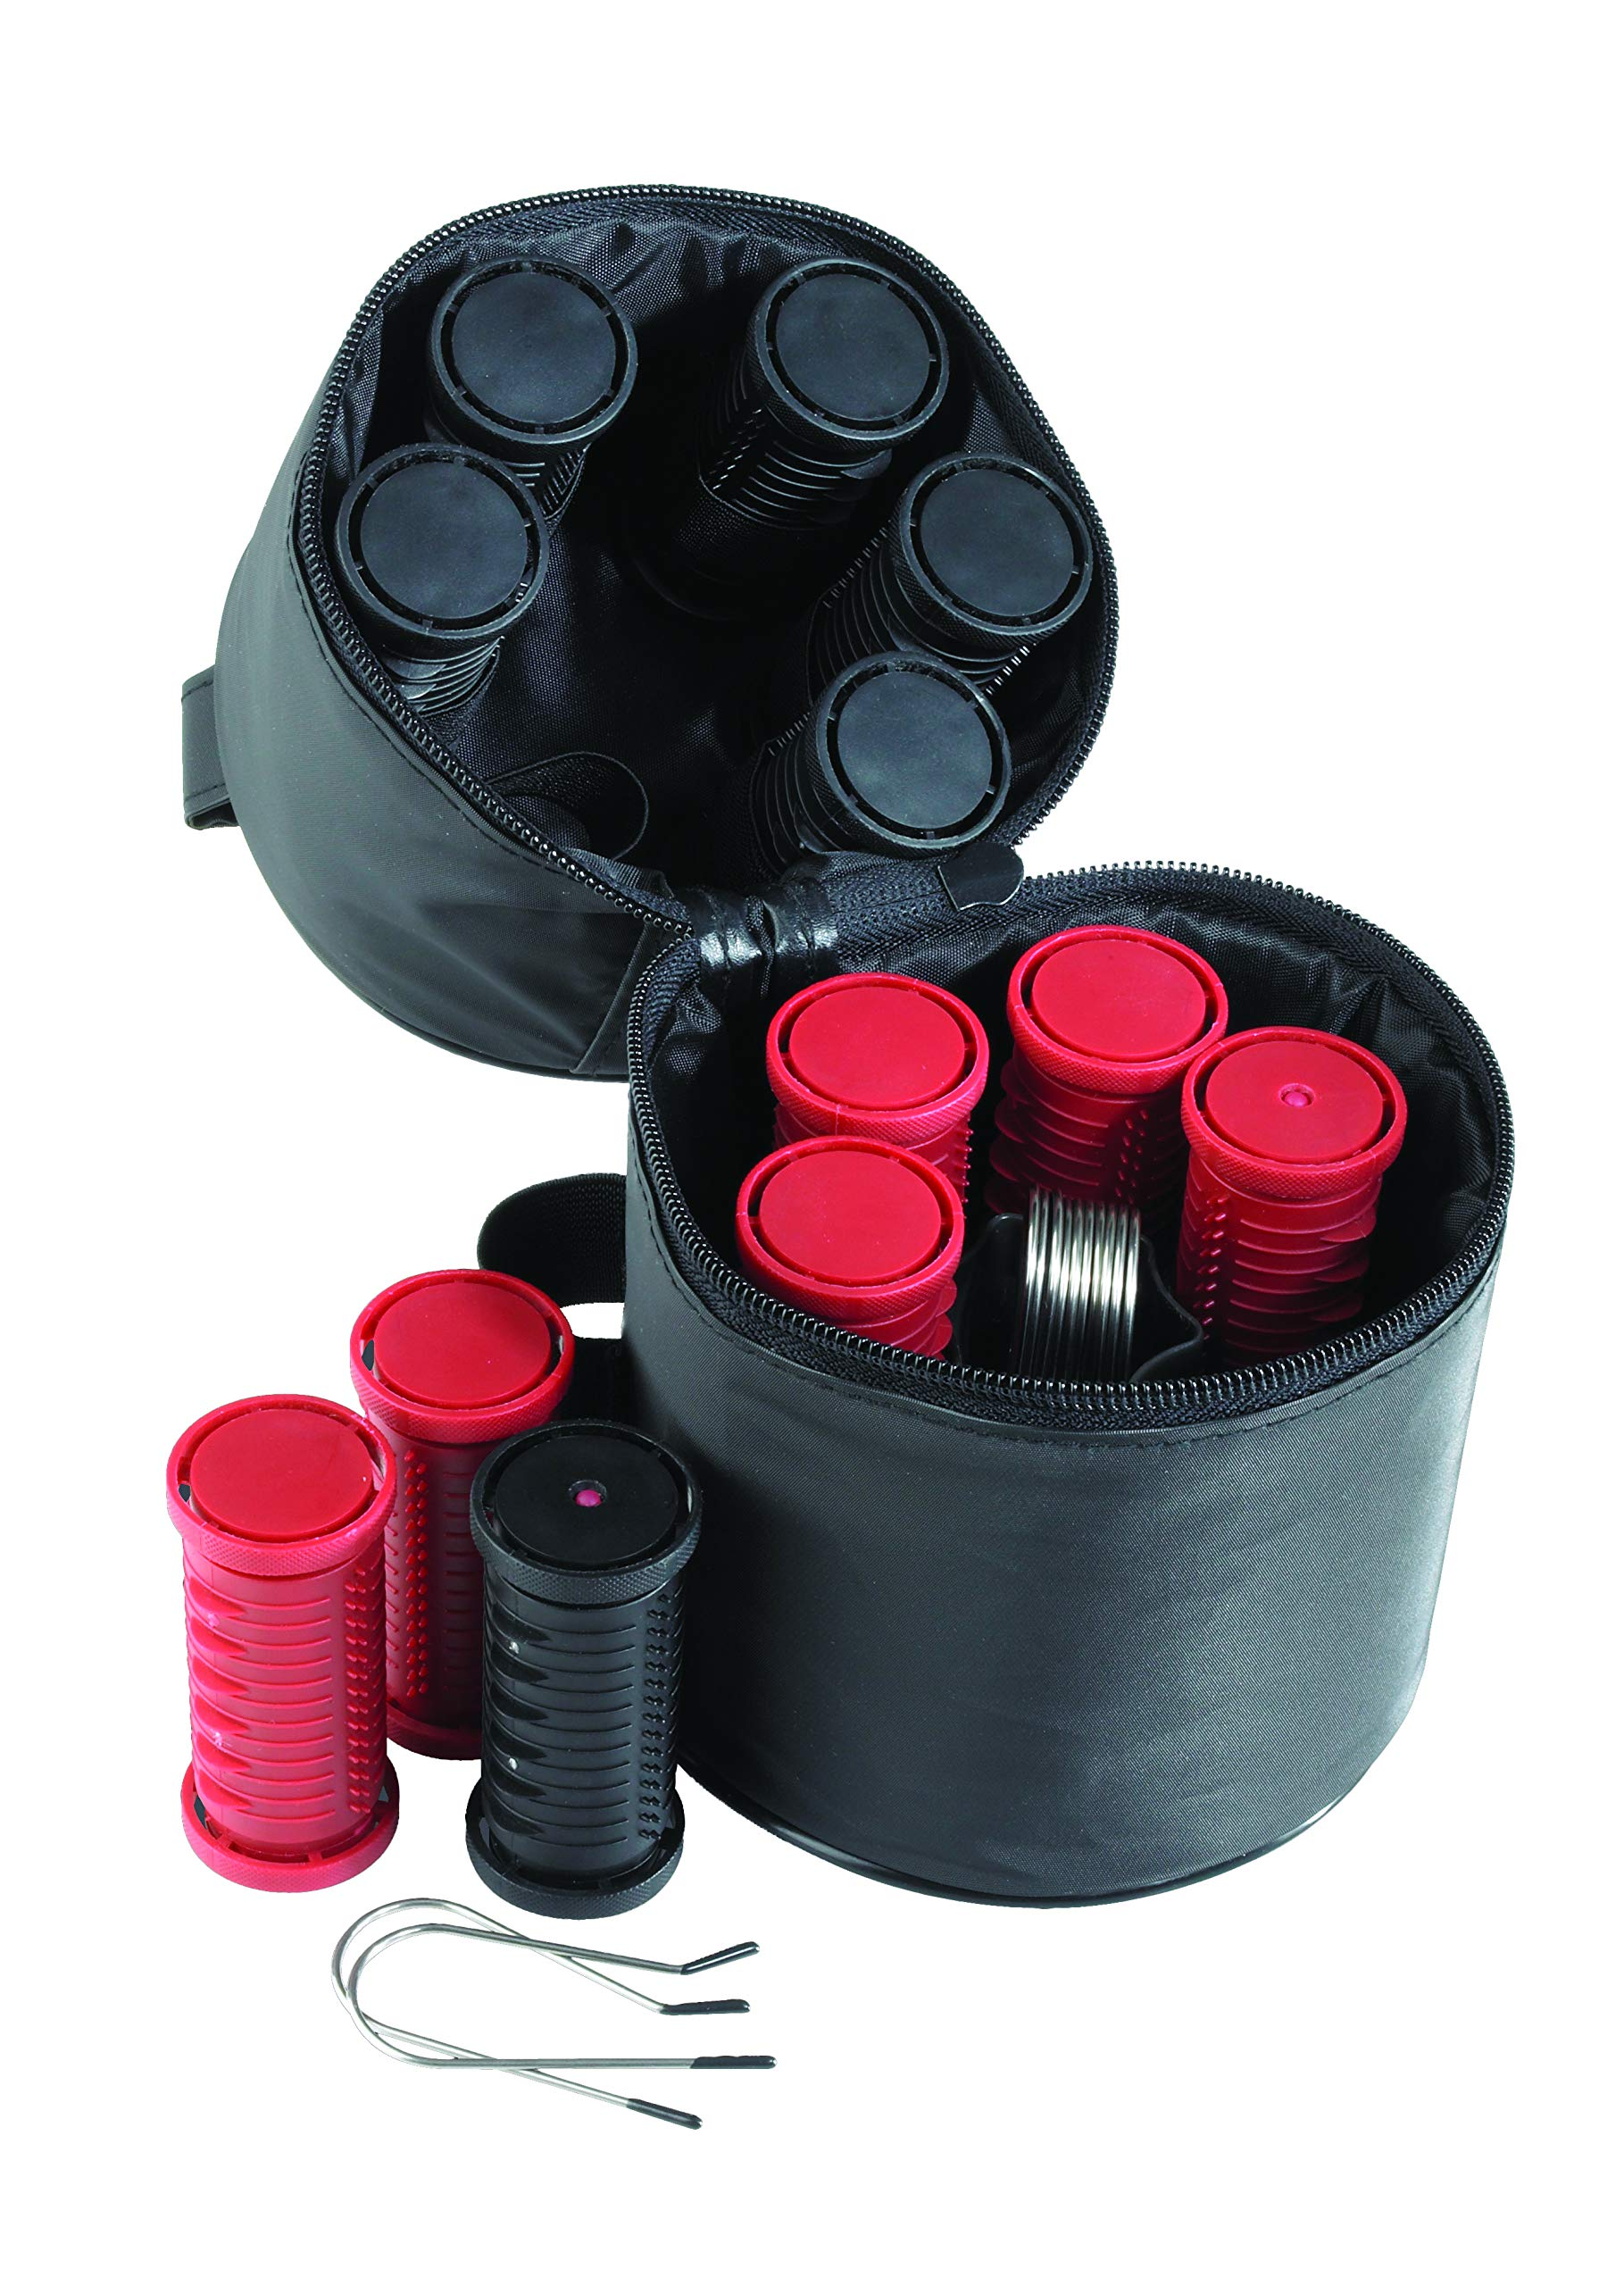 Nicky Clarke Heated 3.5 cm Rollers Compact Travel Set of 12, Ionic Self Grip with Pin Clips and Zip Storage Bag, Black & Red - NHS005